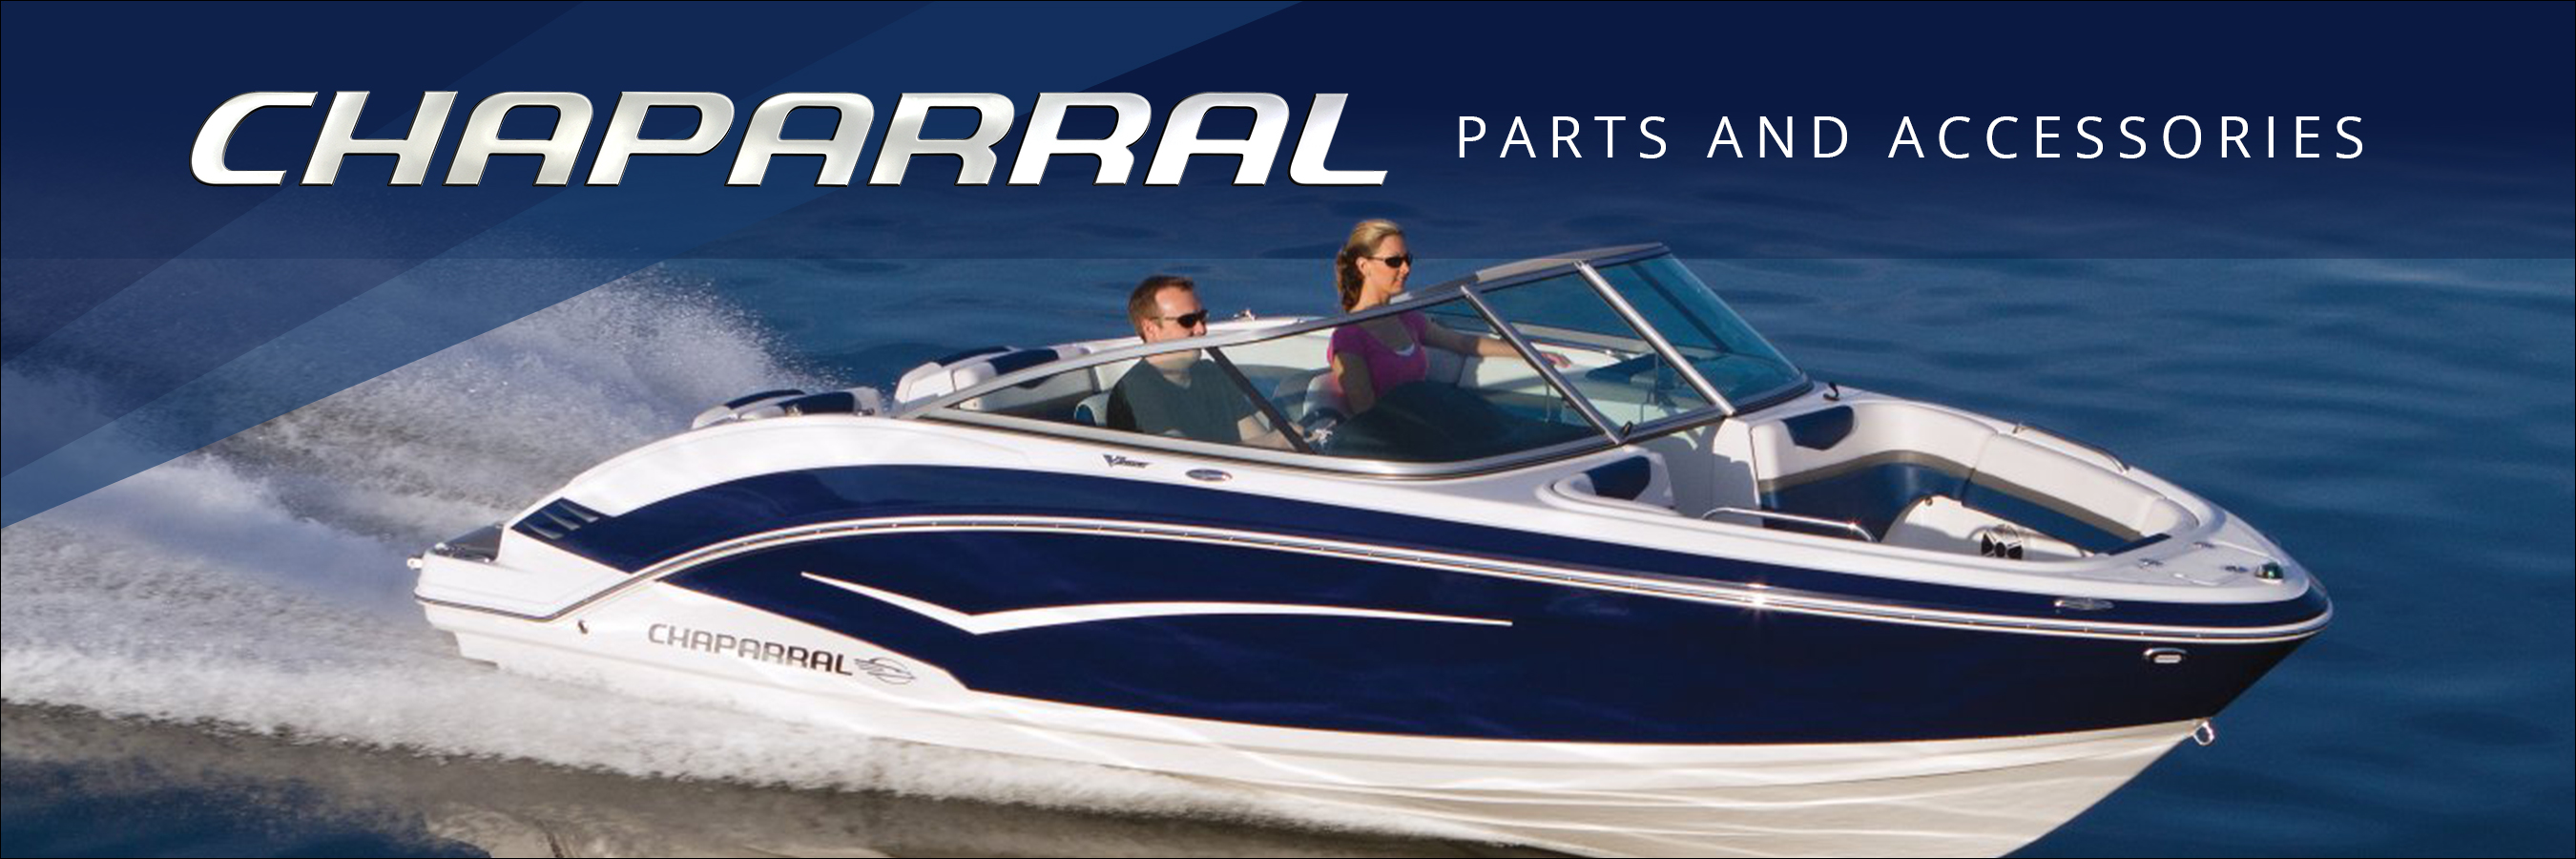 Chaparral Boat Parts